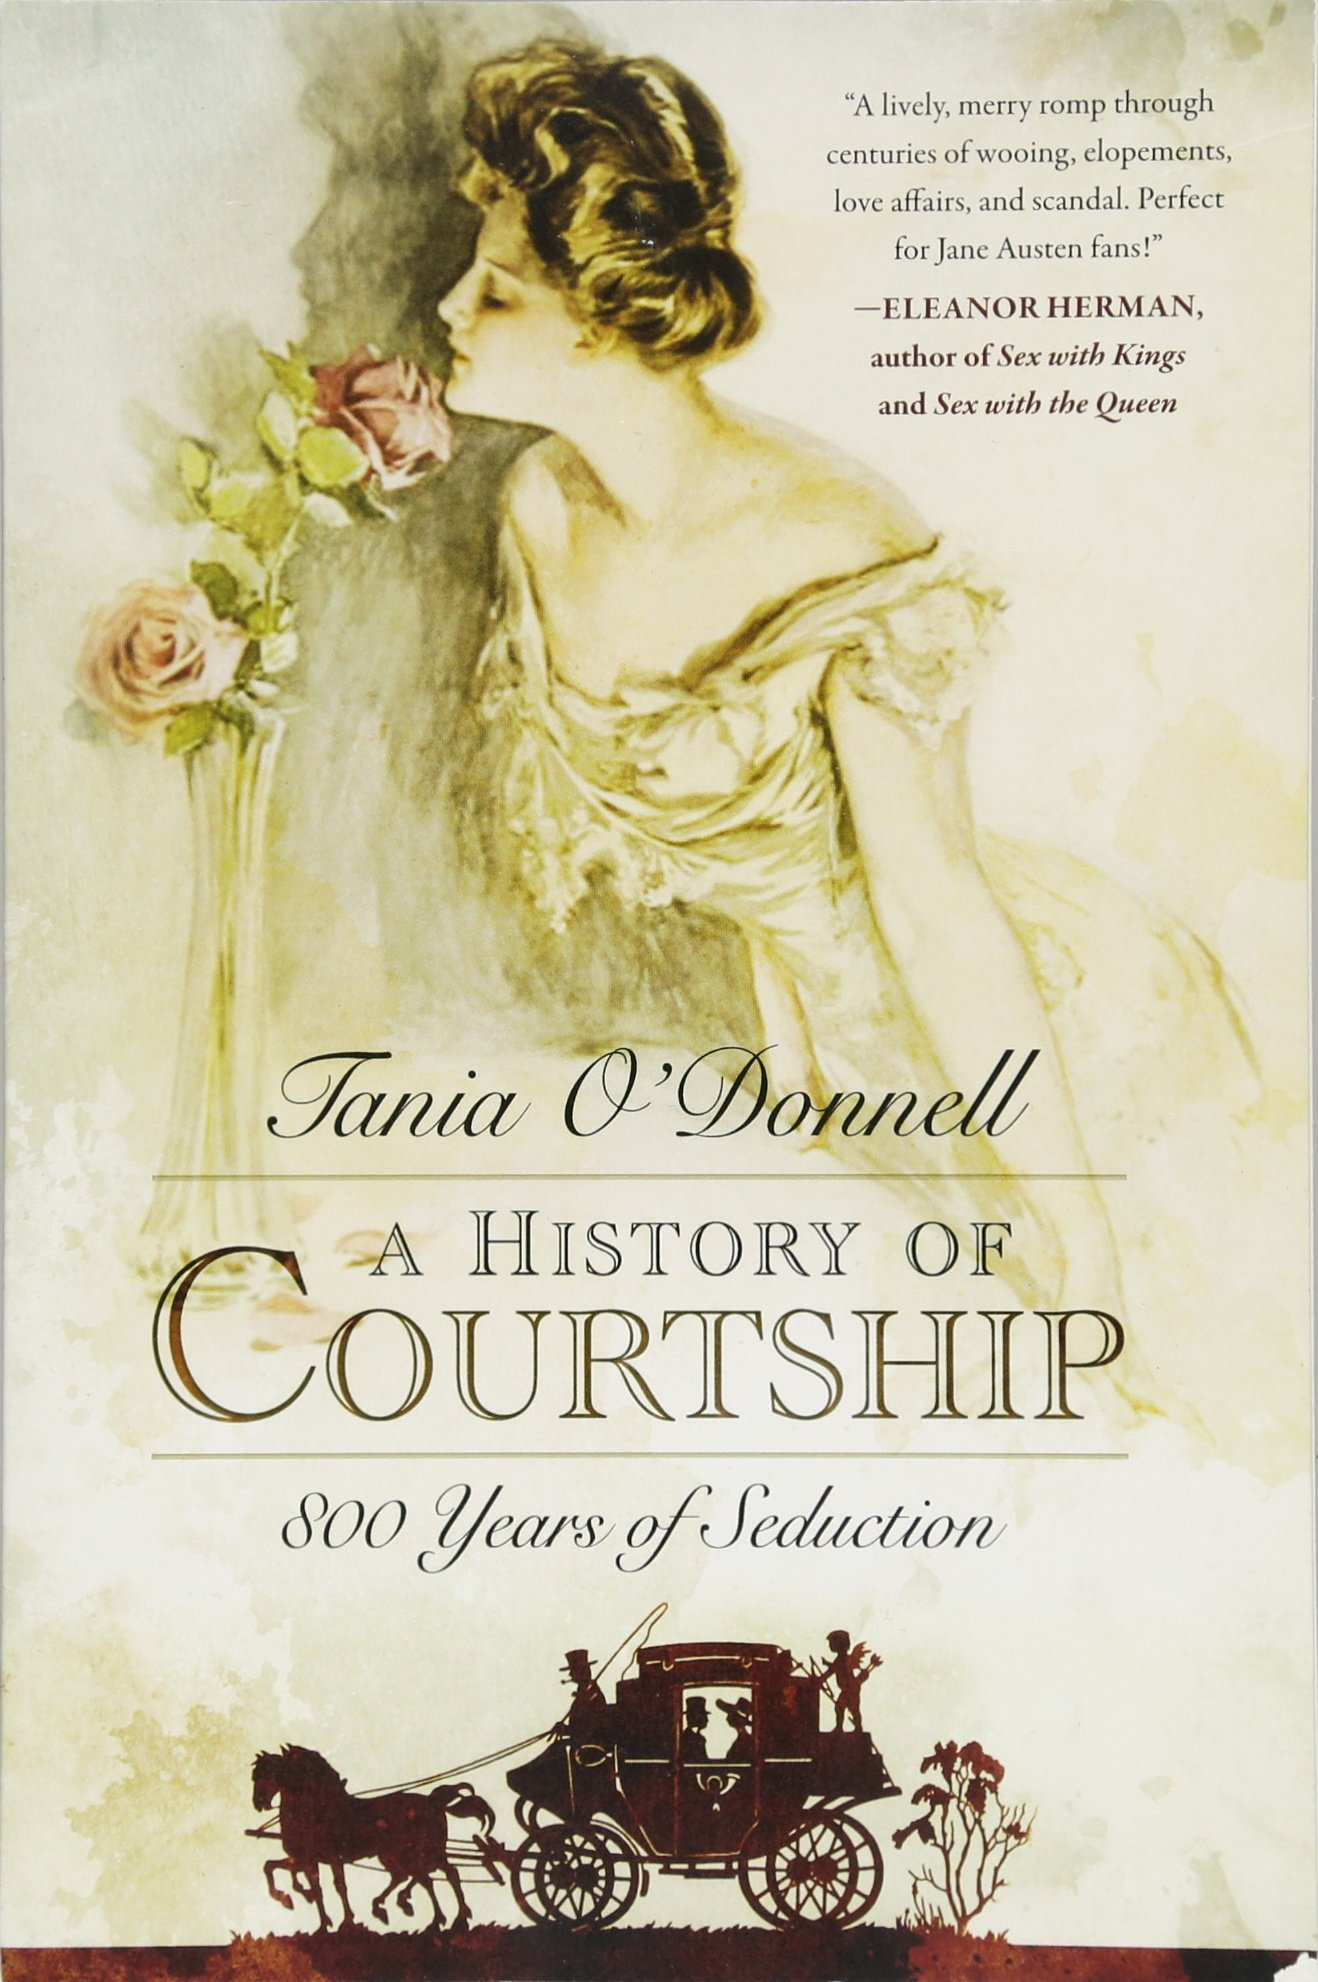 history of courtship by tania o'donnell book cover